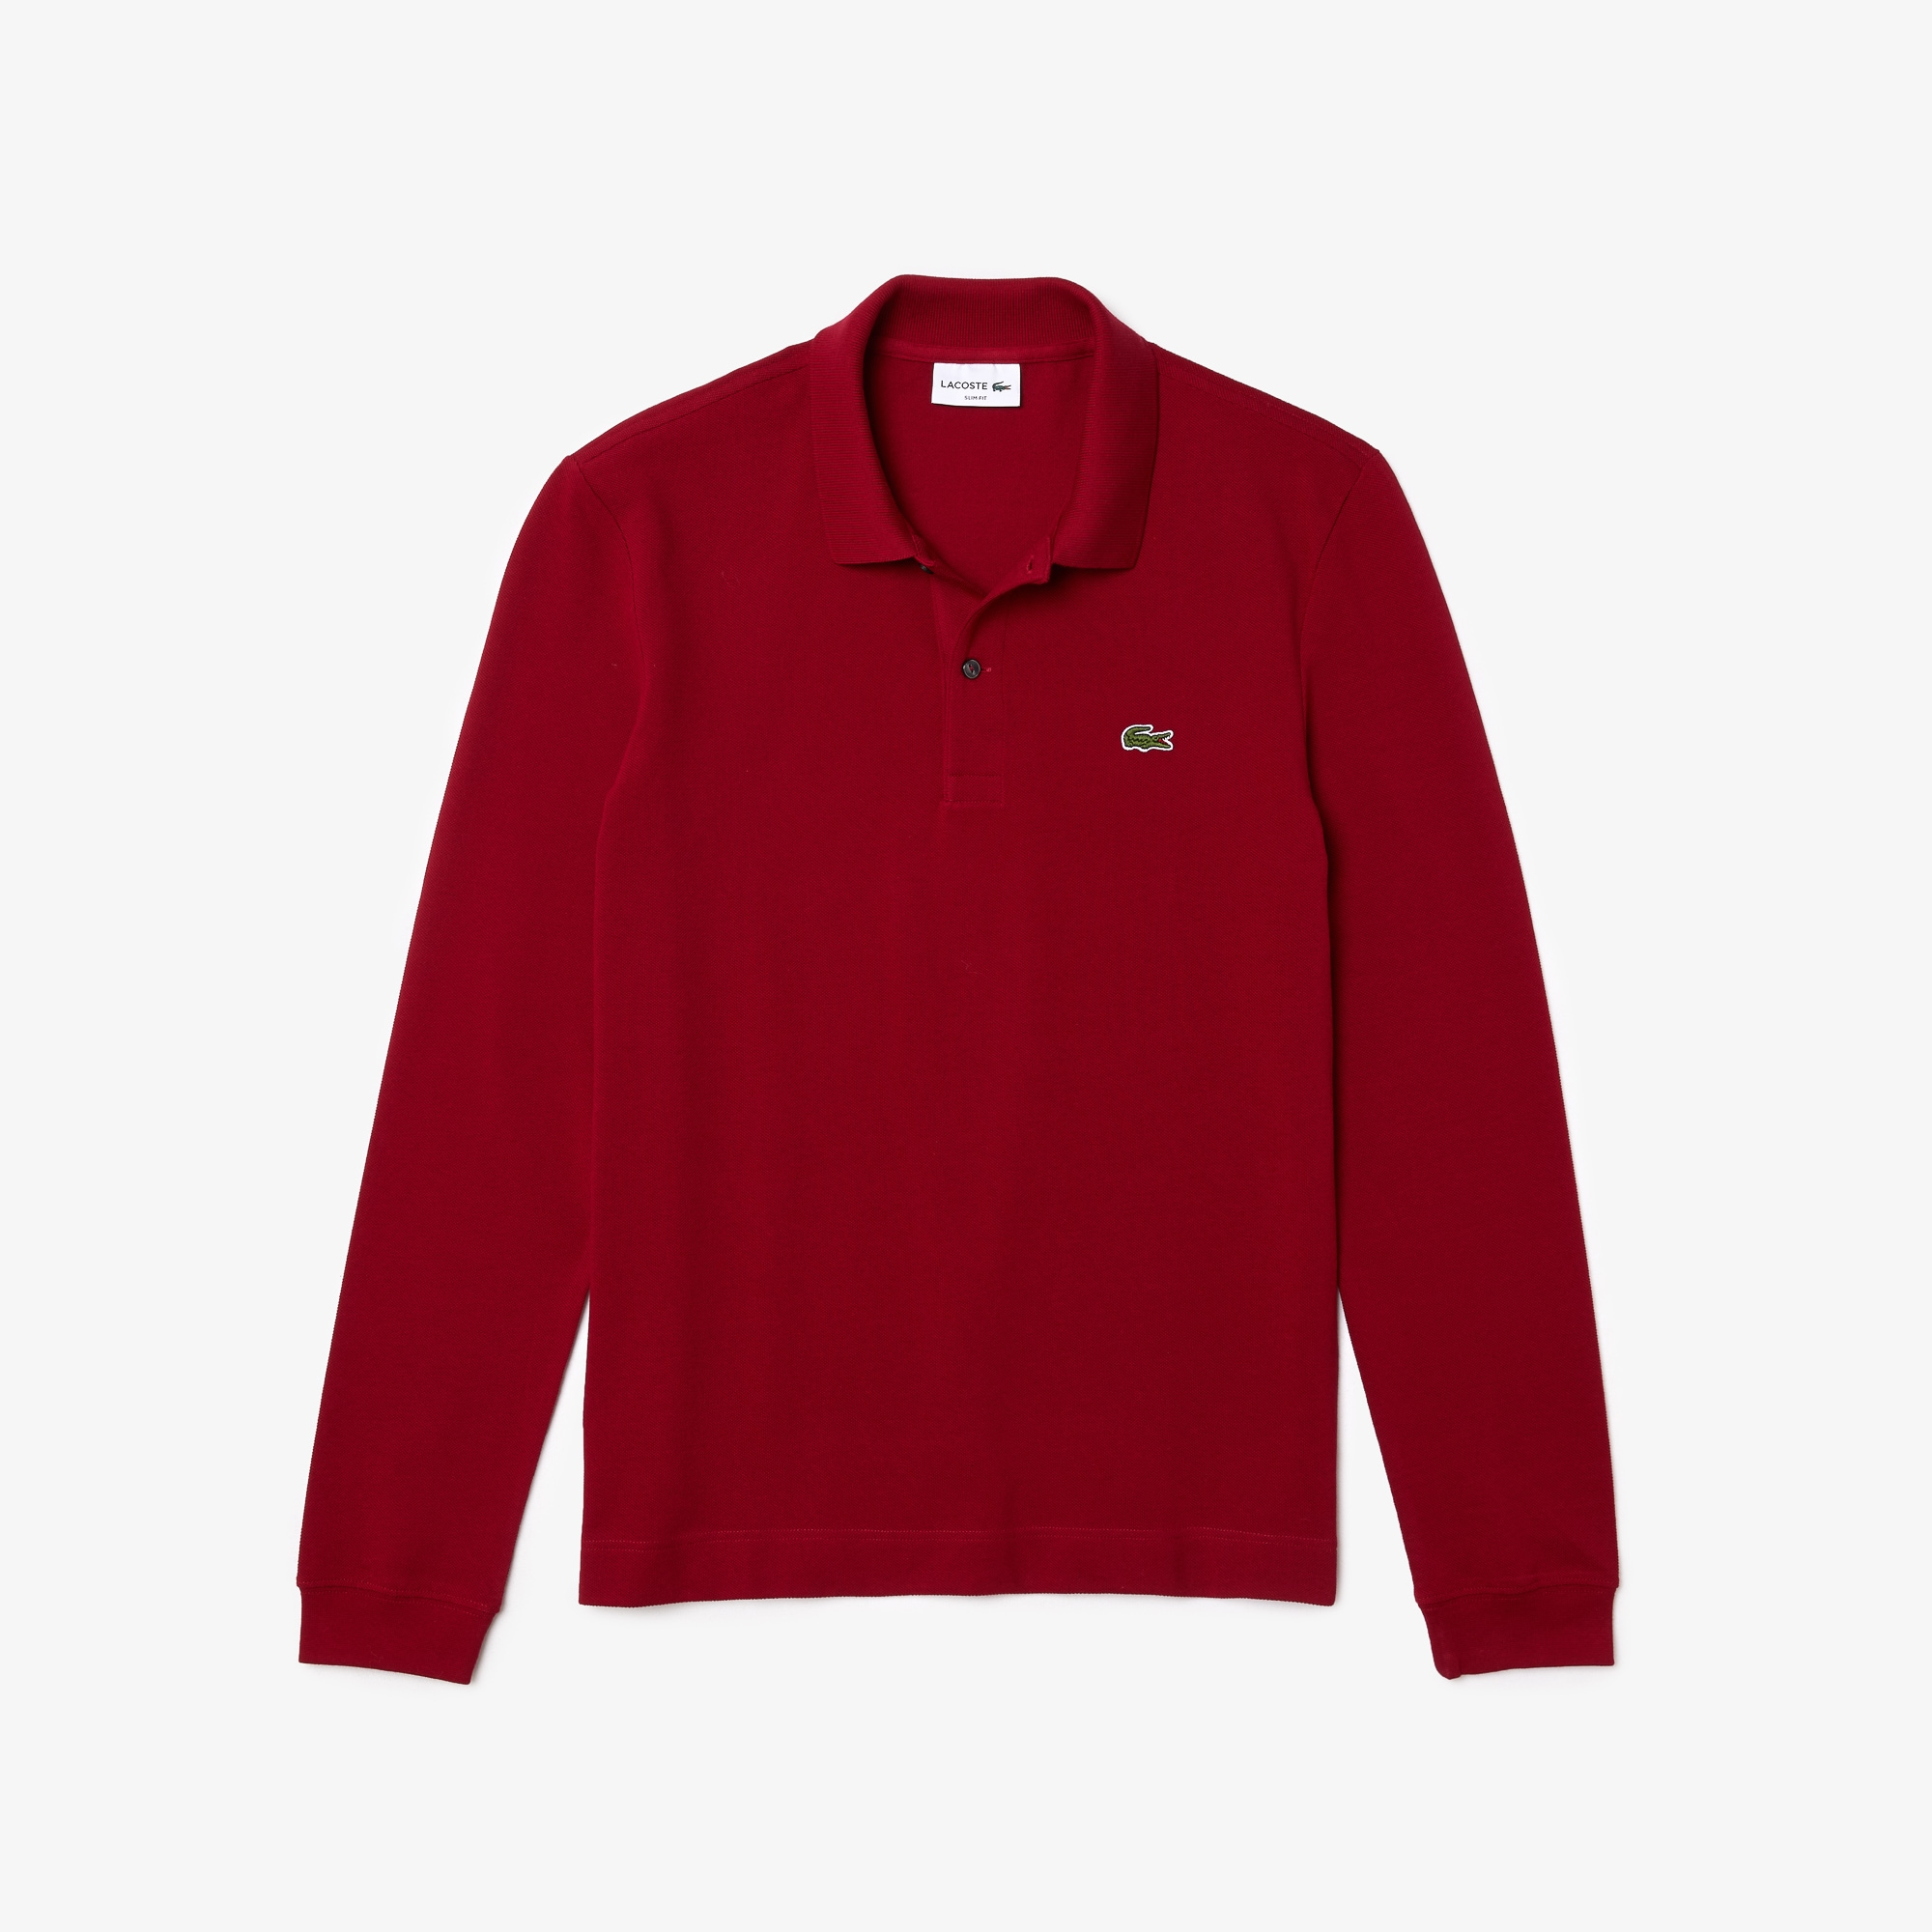 Men's Lacoste Slim Fit Petit Piqué Polo Shirt